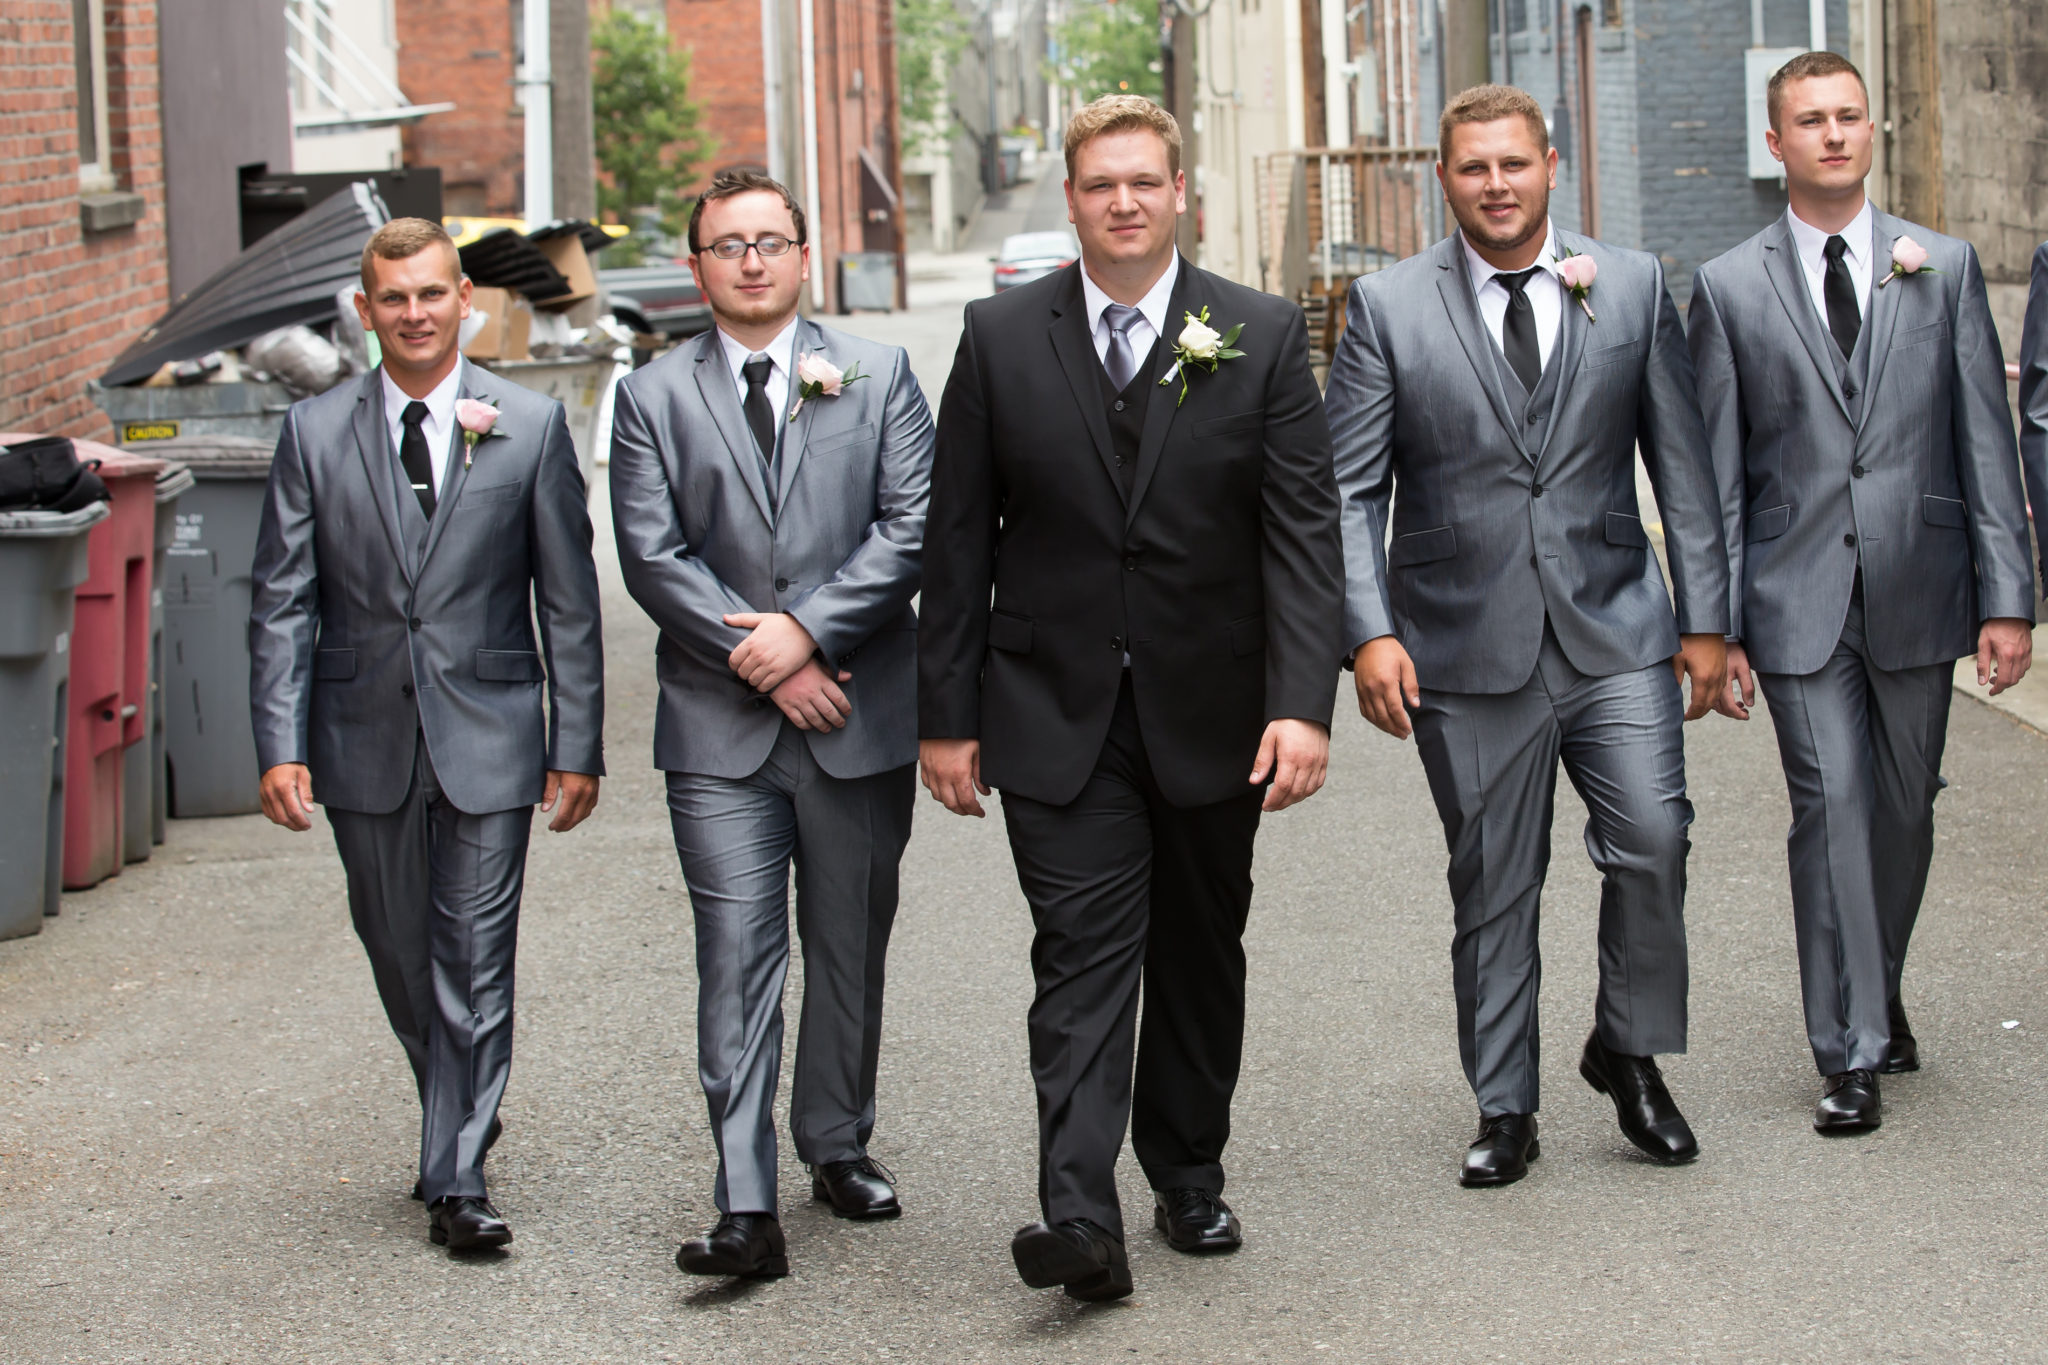 Aleshchenko Groomsmen Photos 16 GLAM MONTE CRISTO BALLROOM WEDDING | EVERETT WEDDING PHOTOGRAPHER